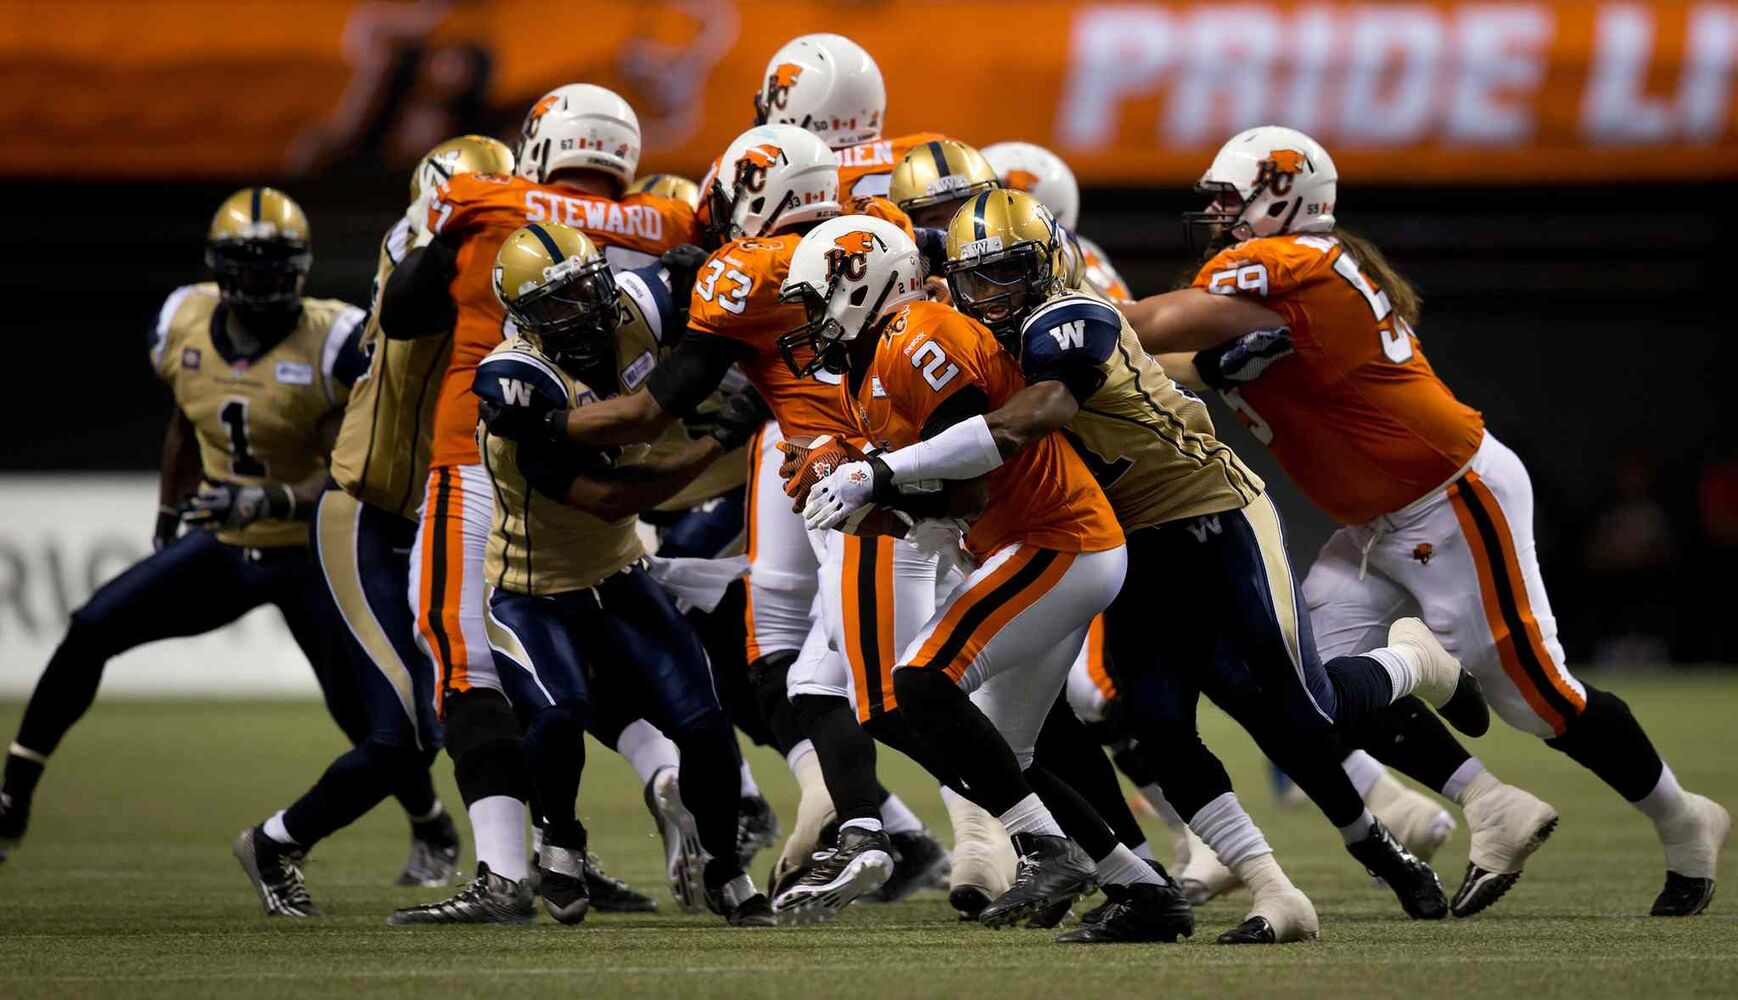 Winnipeg Blue Bombers' Maurice Leggett, second right, sacks B.C. Lions' quarterback Kevin Glenn (2) during the second half of Friday's game. (DARRYL DYCK / The Canadian Press)